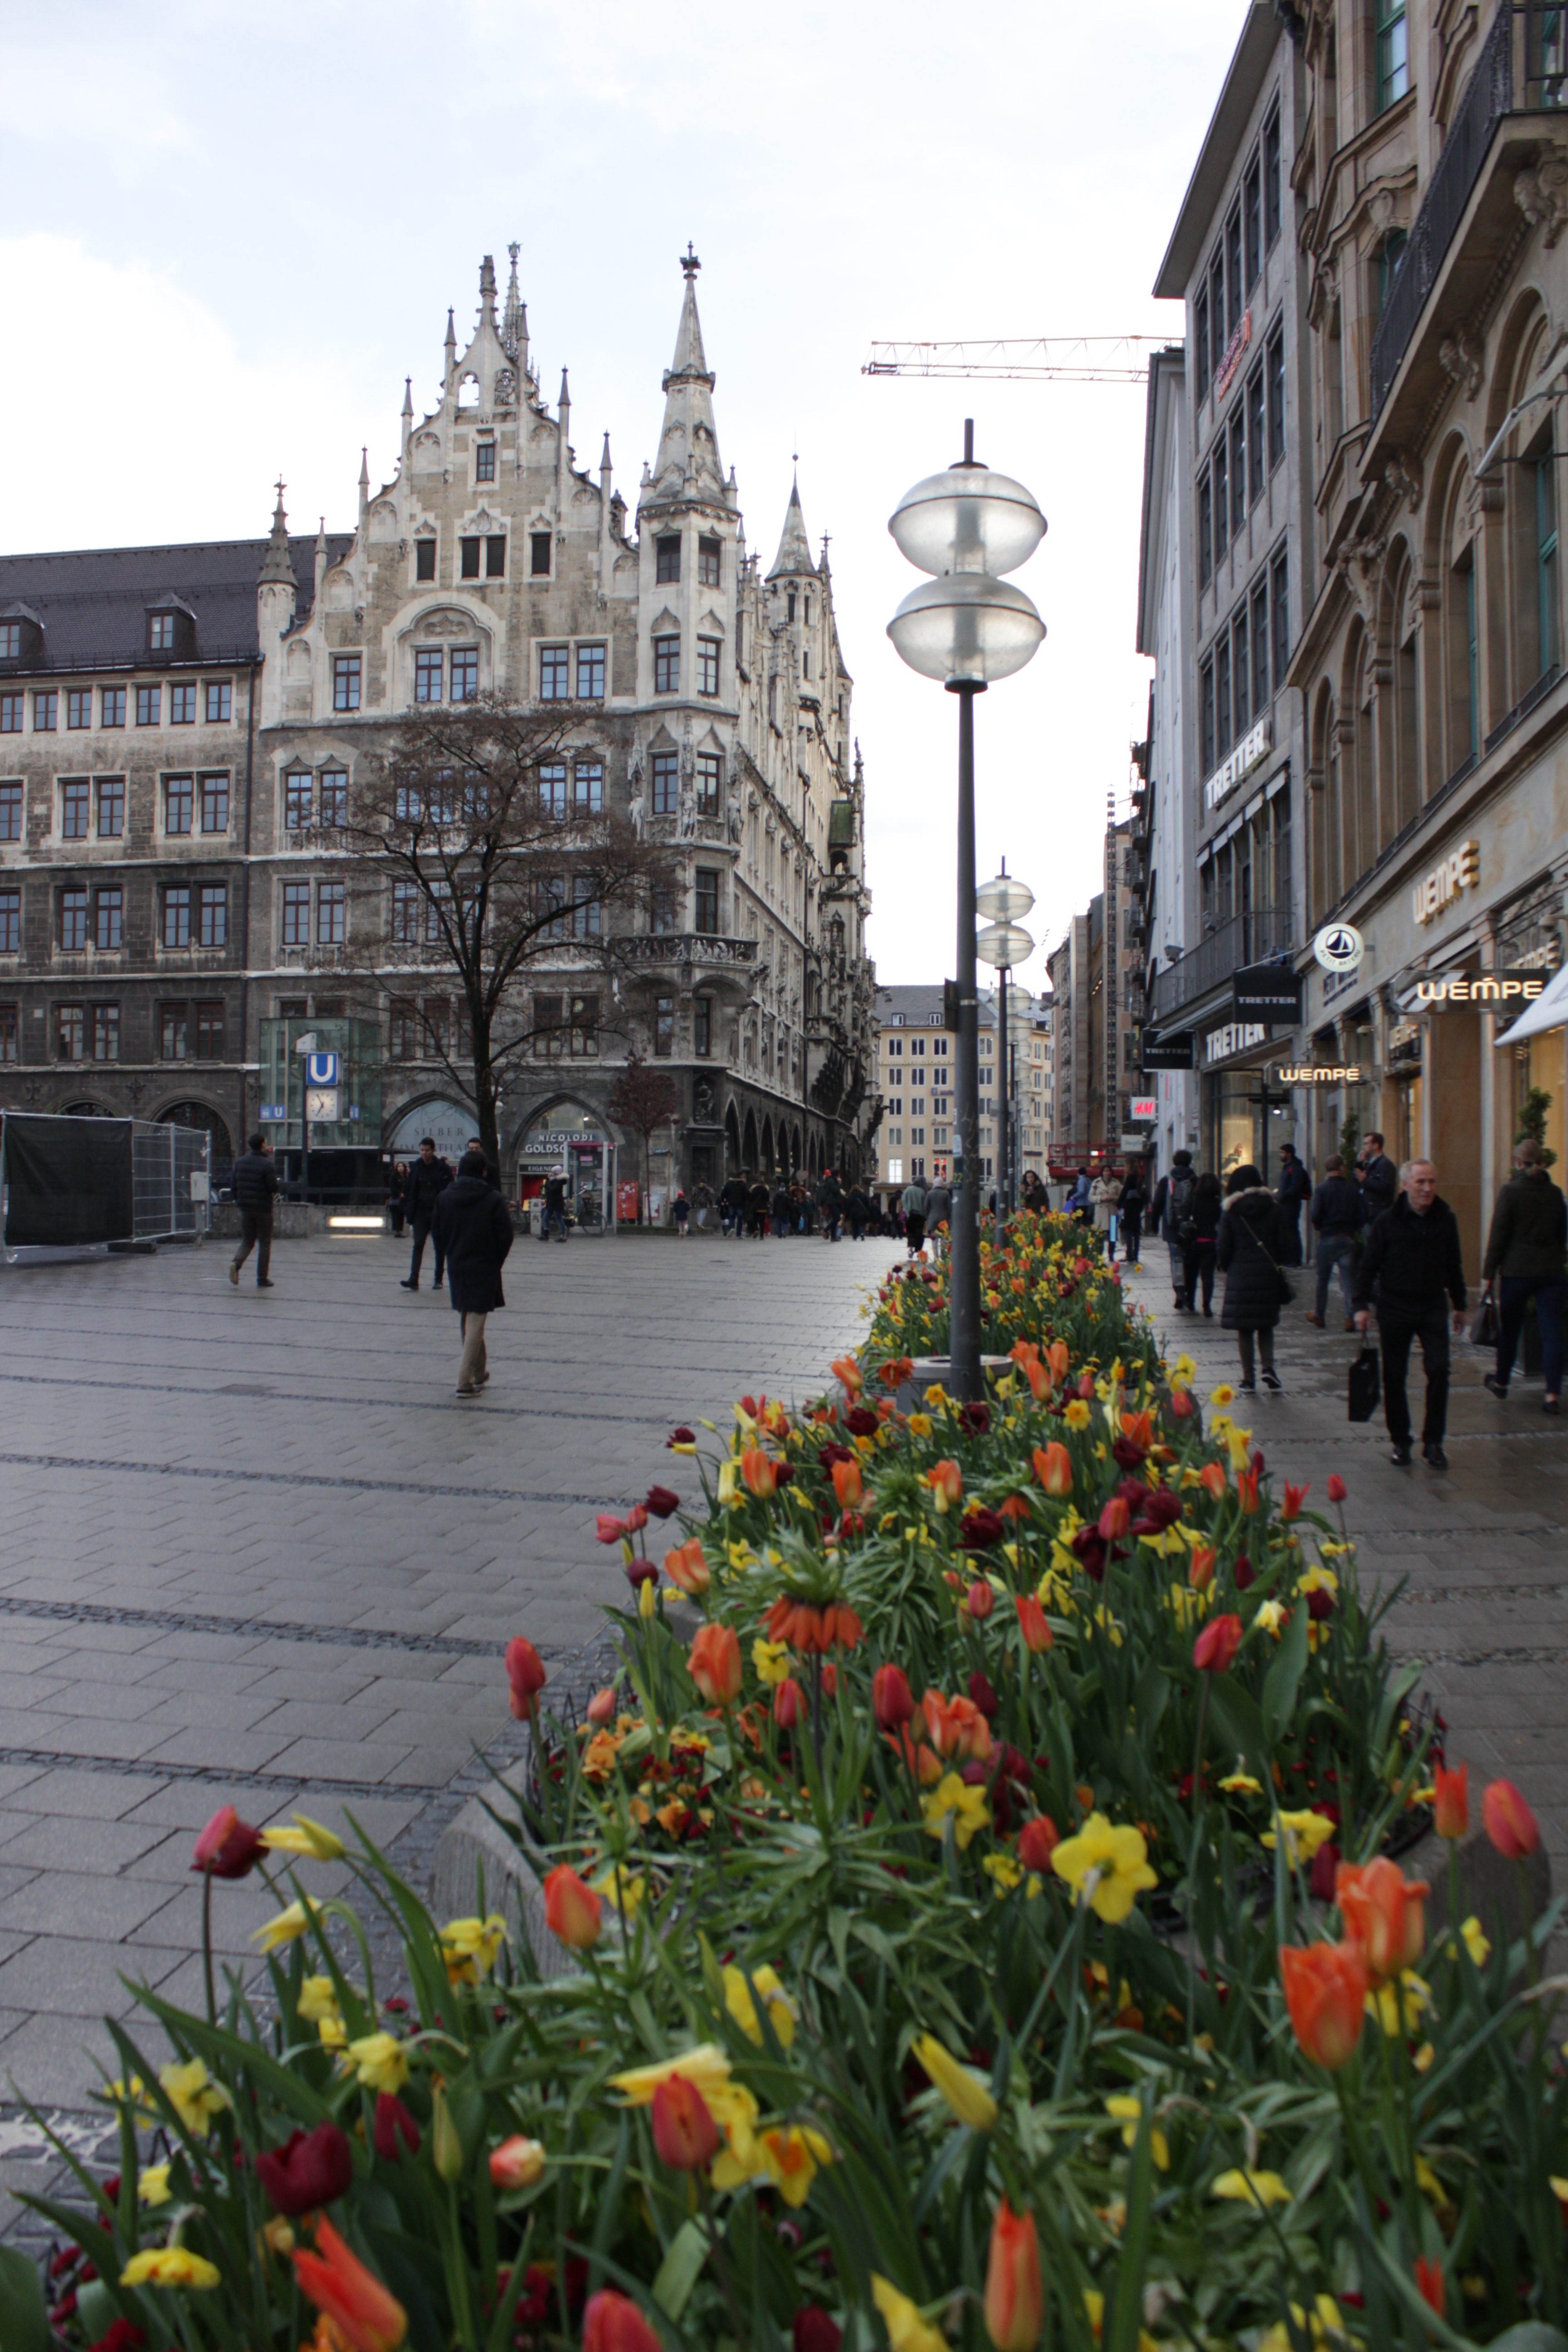 Blooming tulips near Marienplatz